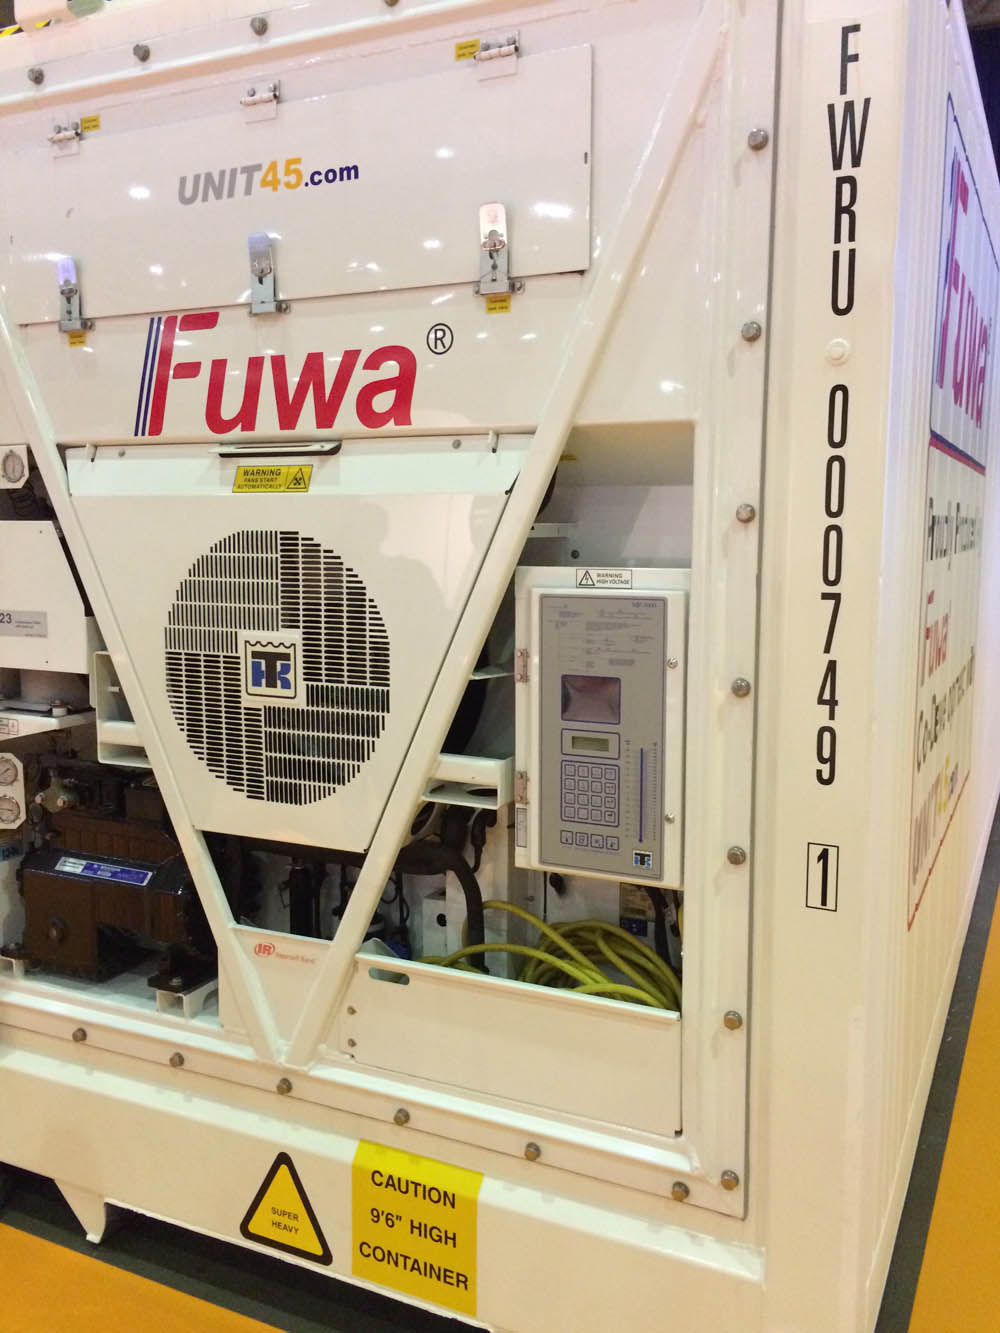 FUWA built a record 18,000 TEU of reefer containers in 2018